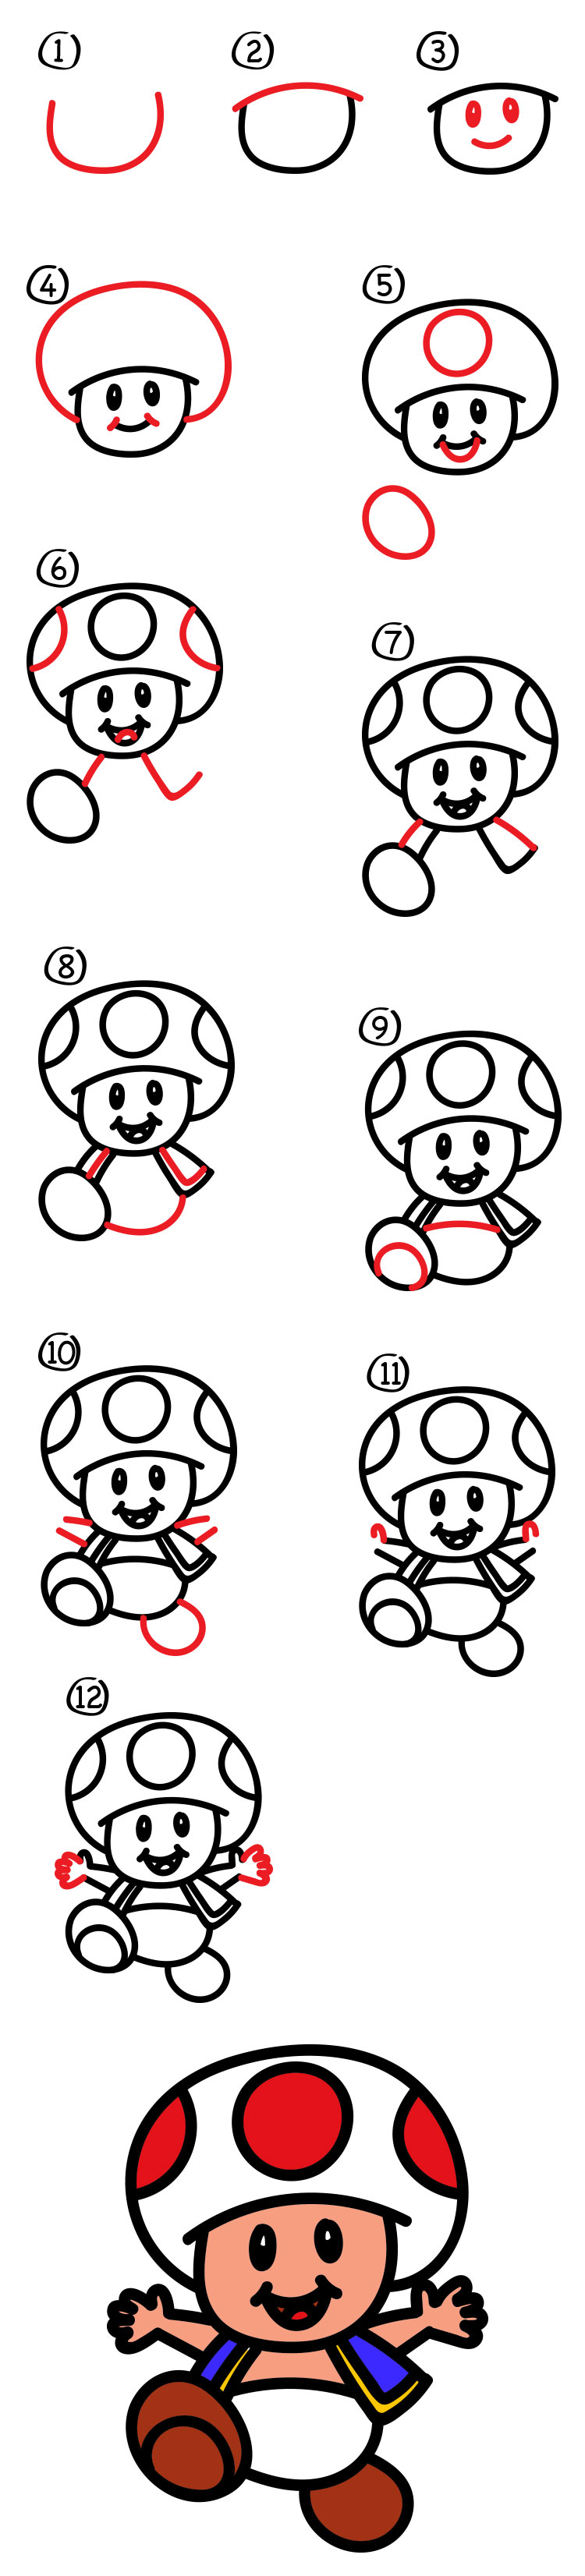 How To Draw Toad From Mario With Body - Art For Kids Hub